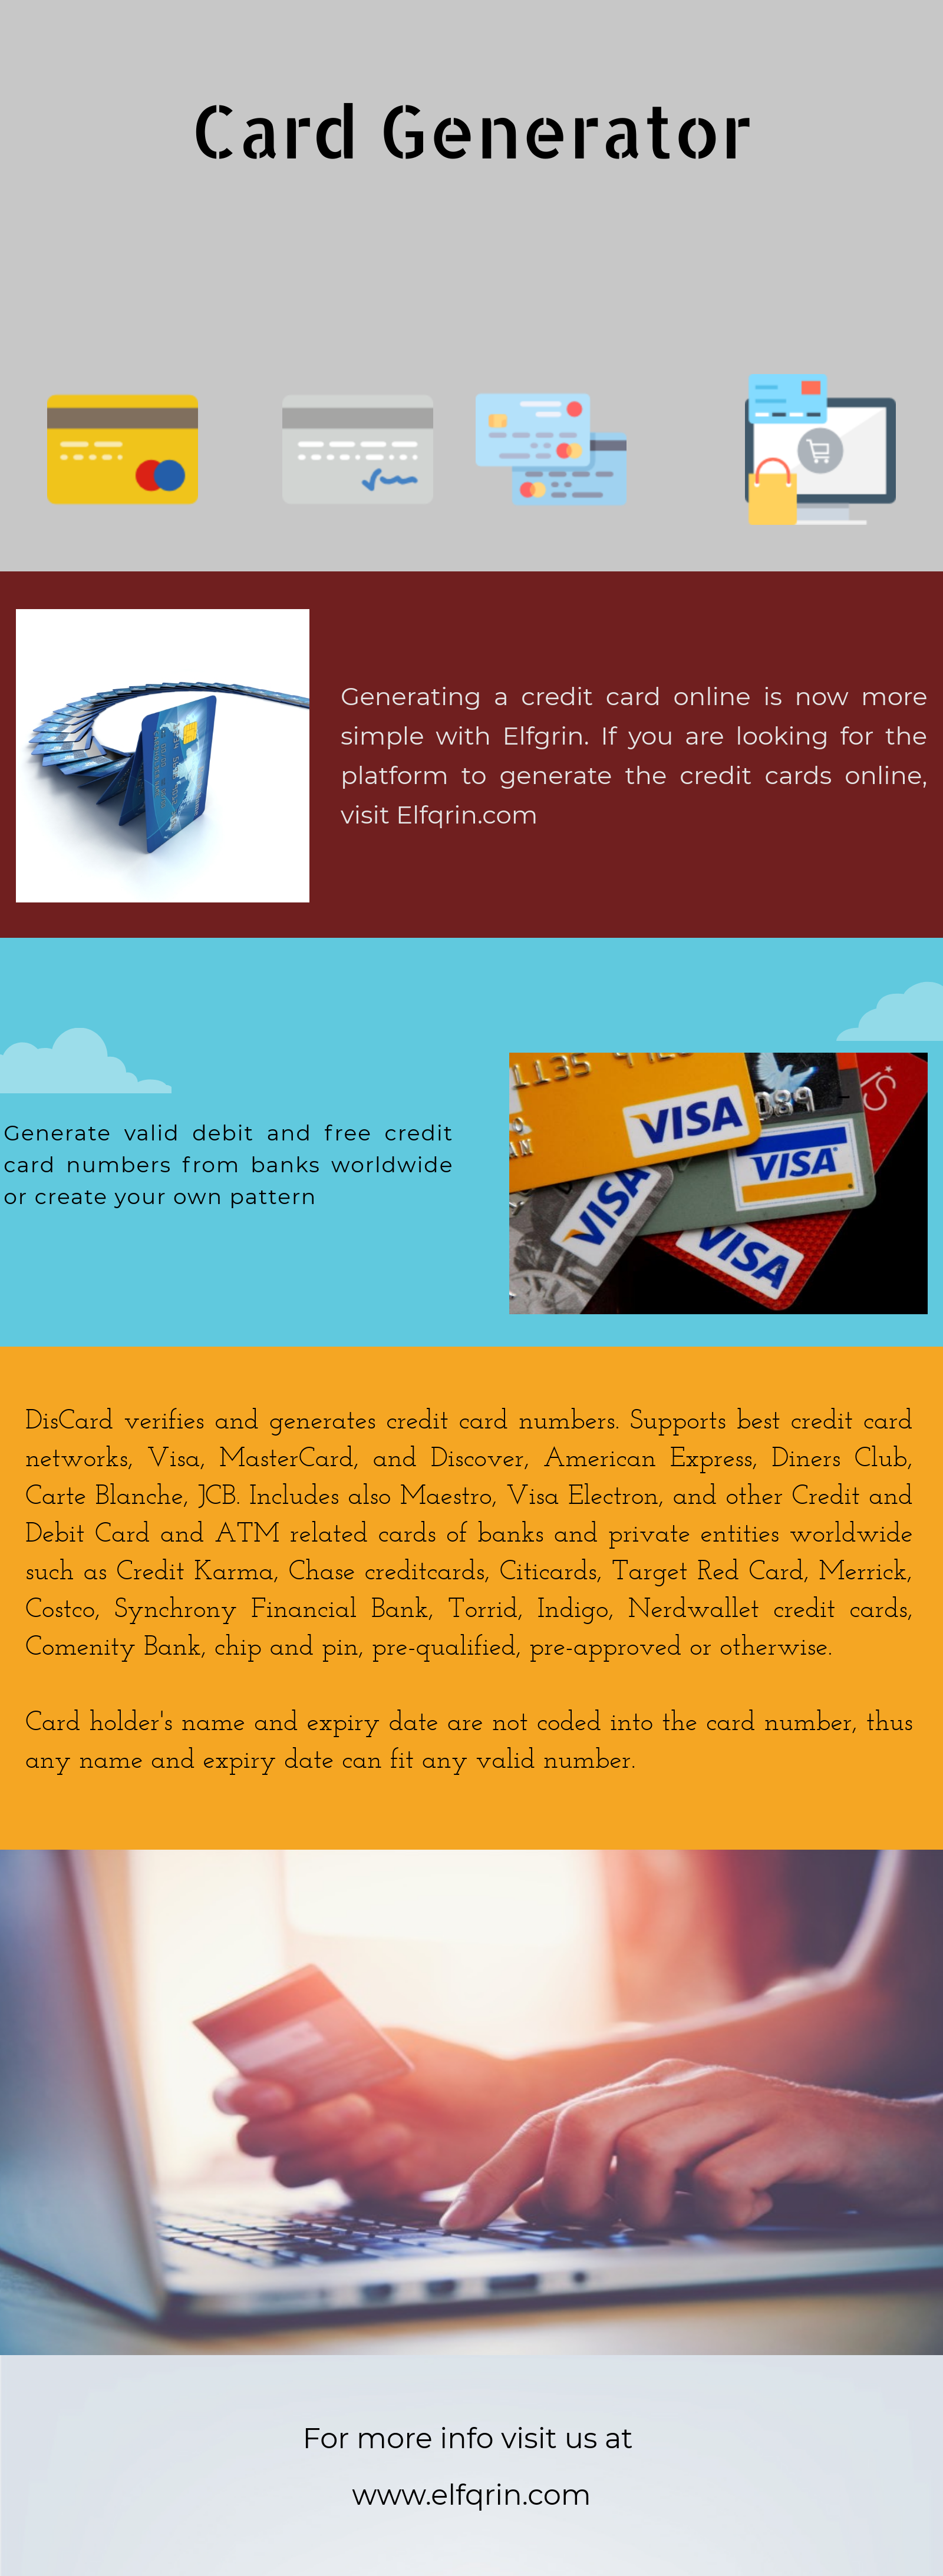 Generating a credit card online is now more simple with elfqrin.com. If you are looking for the platform to generate the credit cards online.